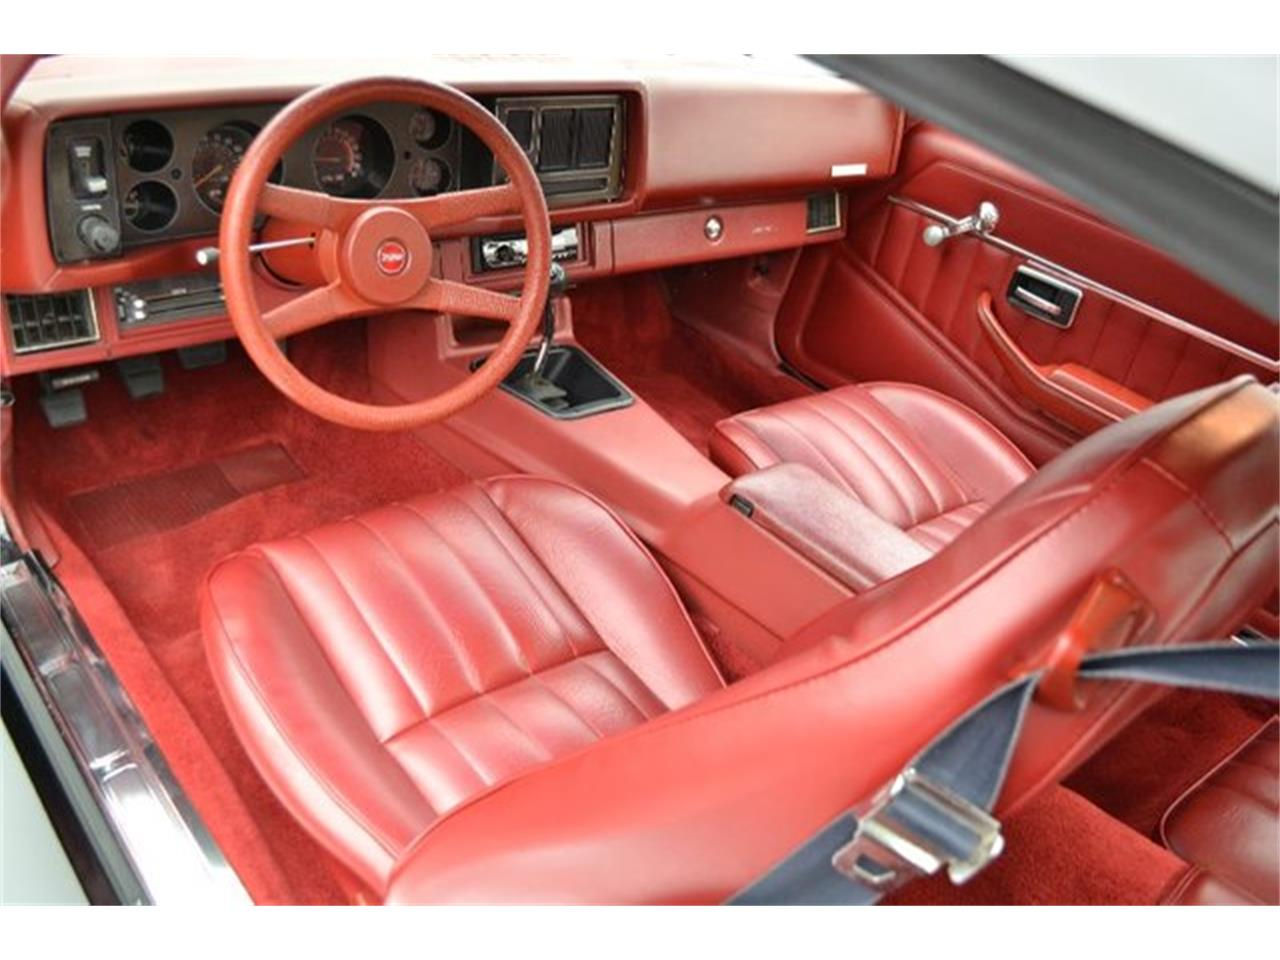 1979 Chevrolet Camaro for sale in Hickory, NC – photo 26